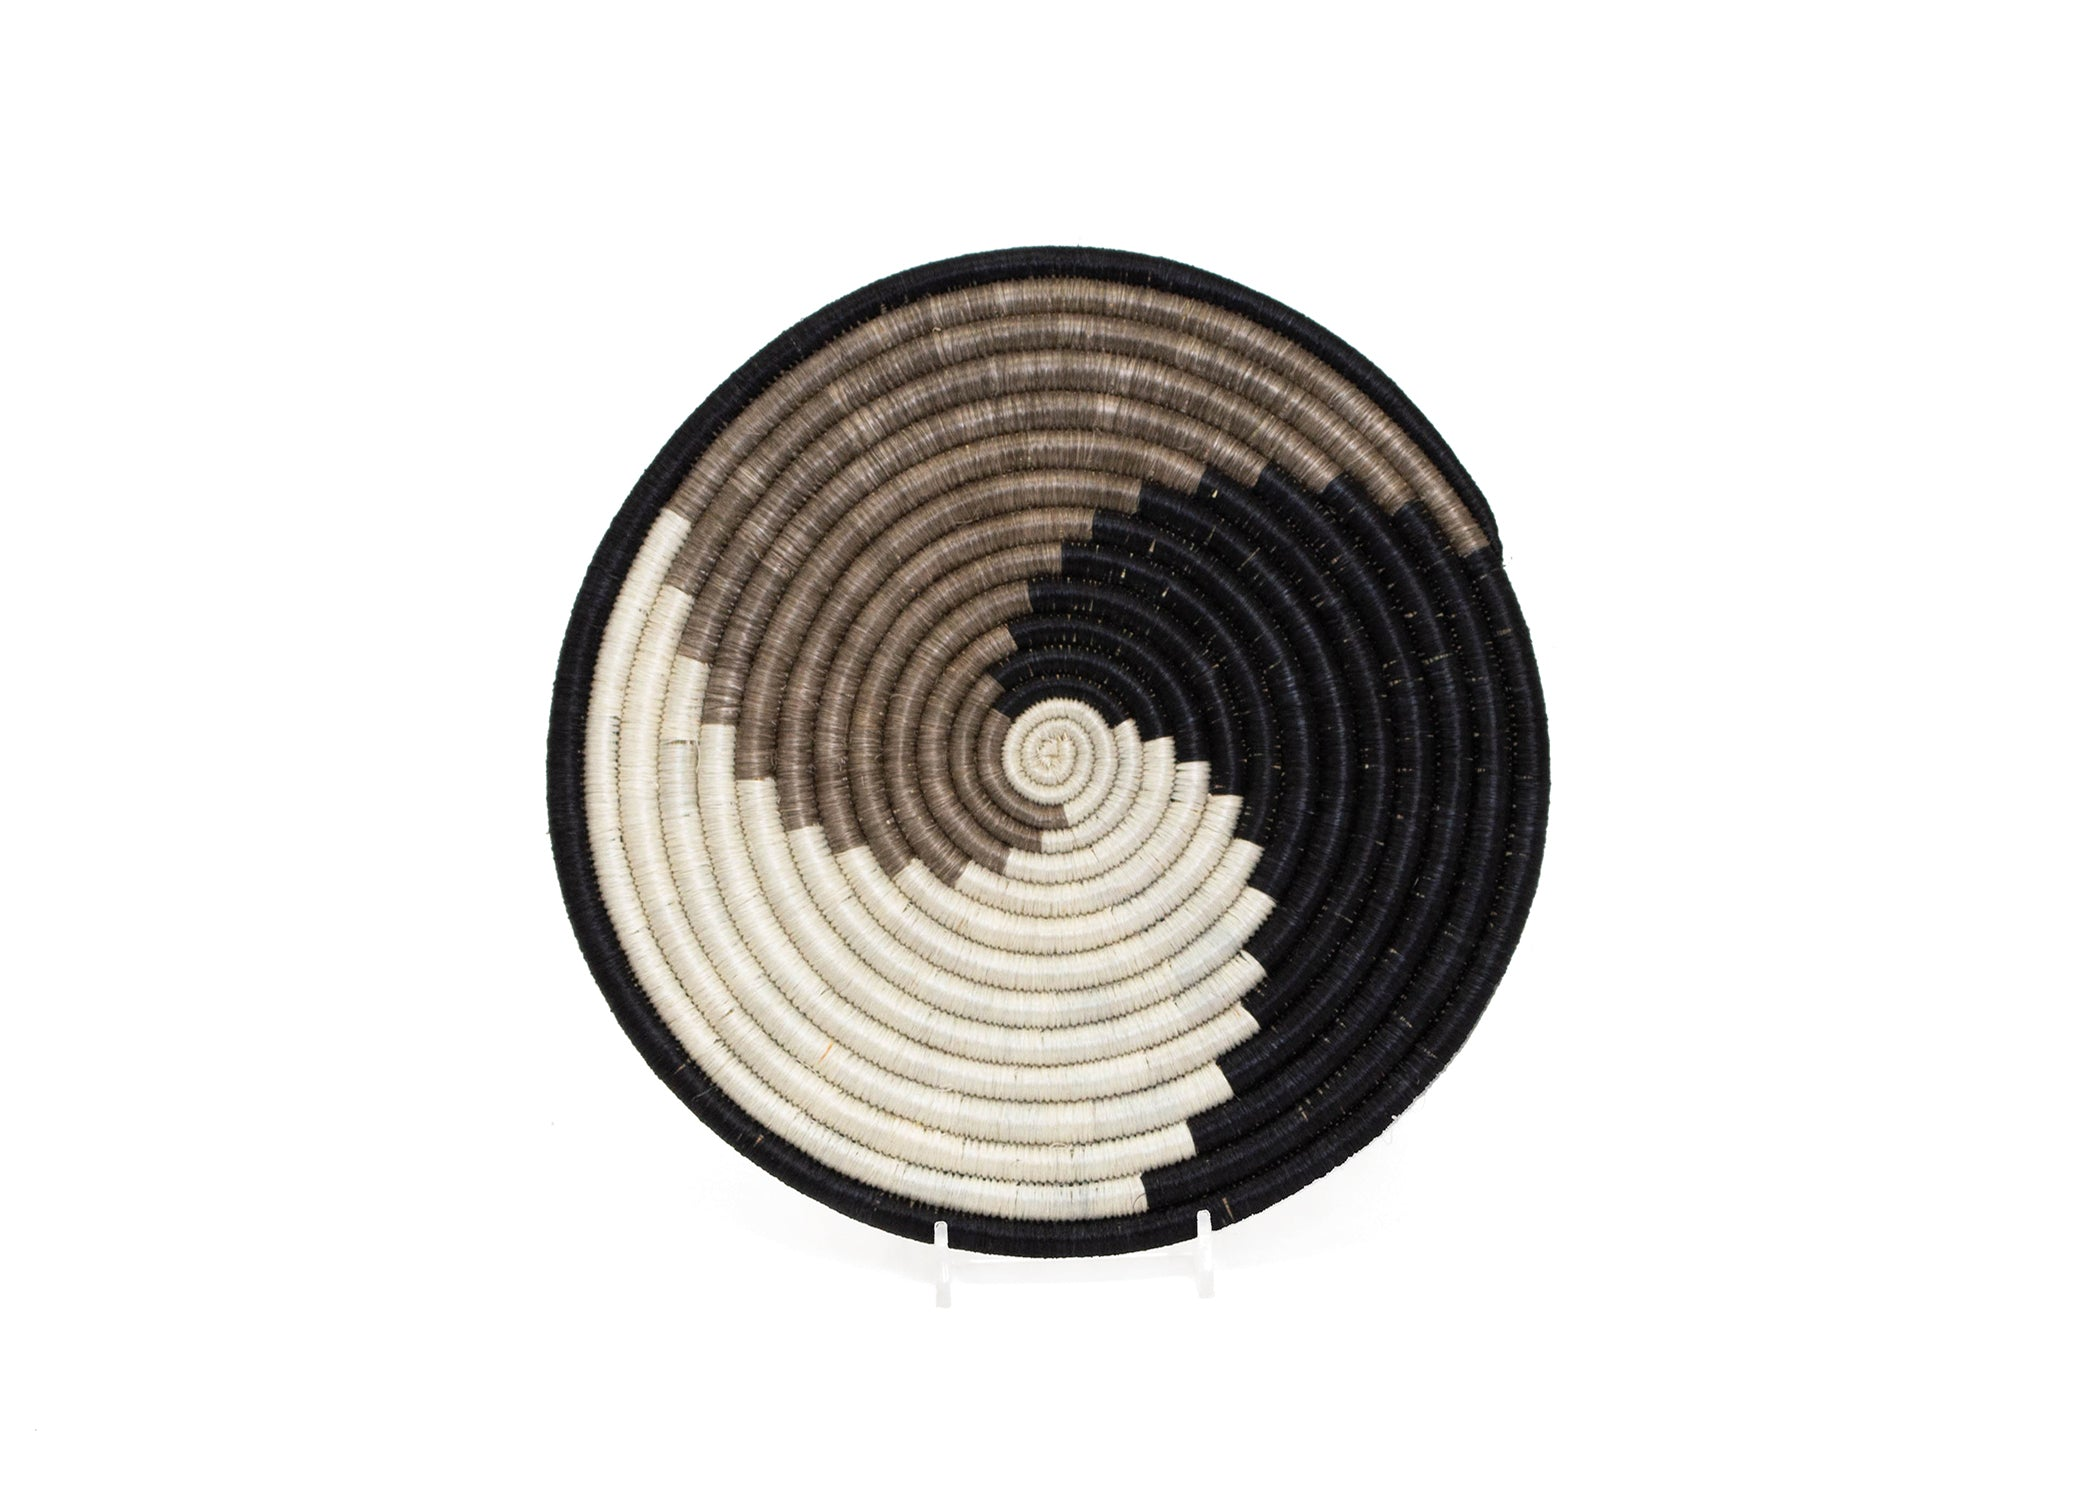 Light Taupe + Black Unity Trivet - KAZI - Artisan made high quality home decor and wall art